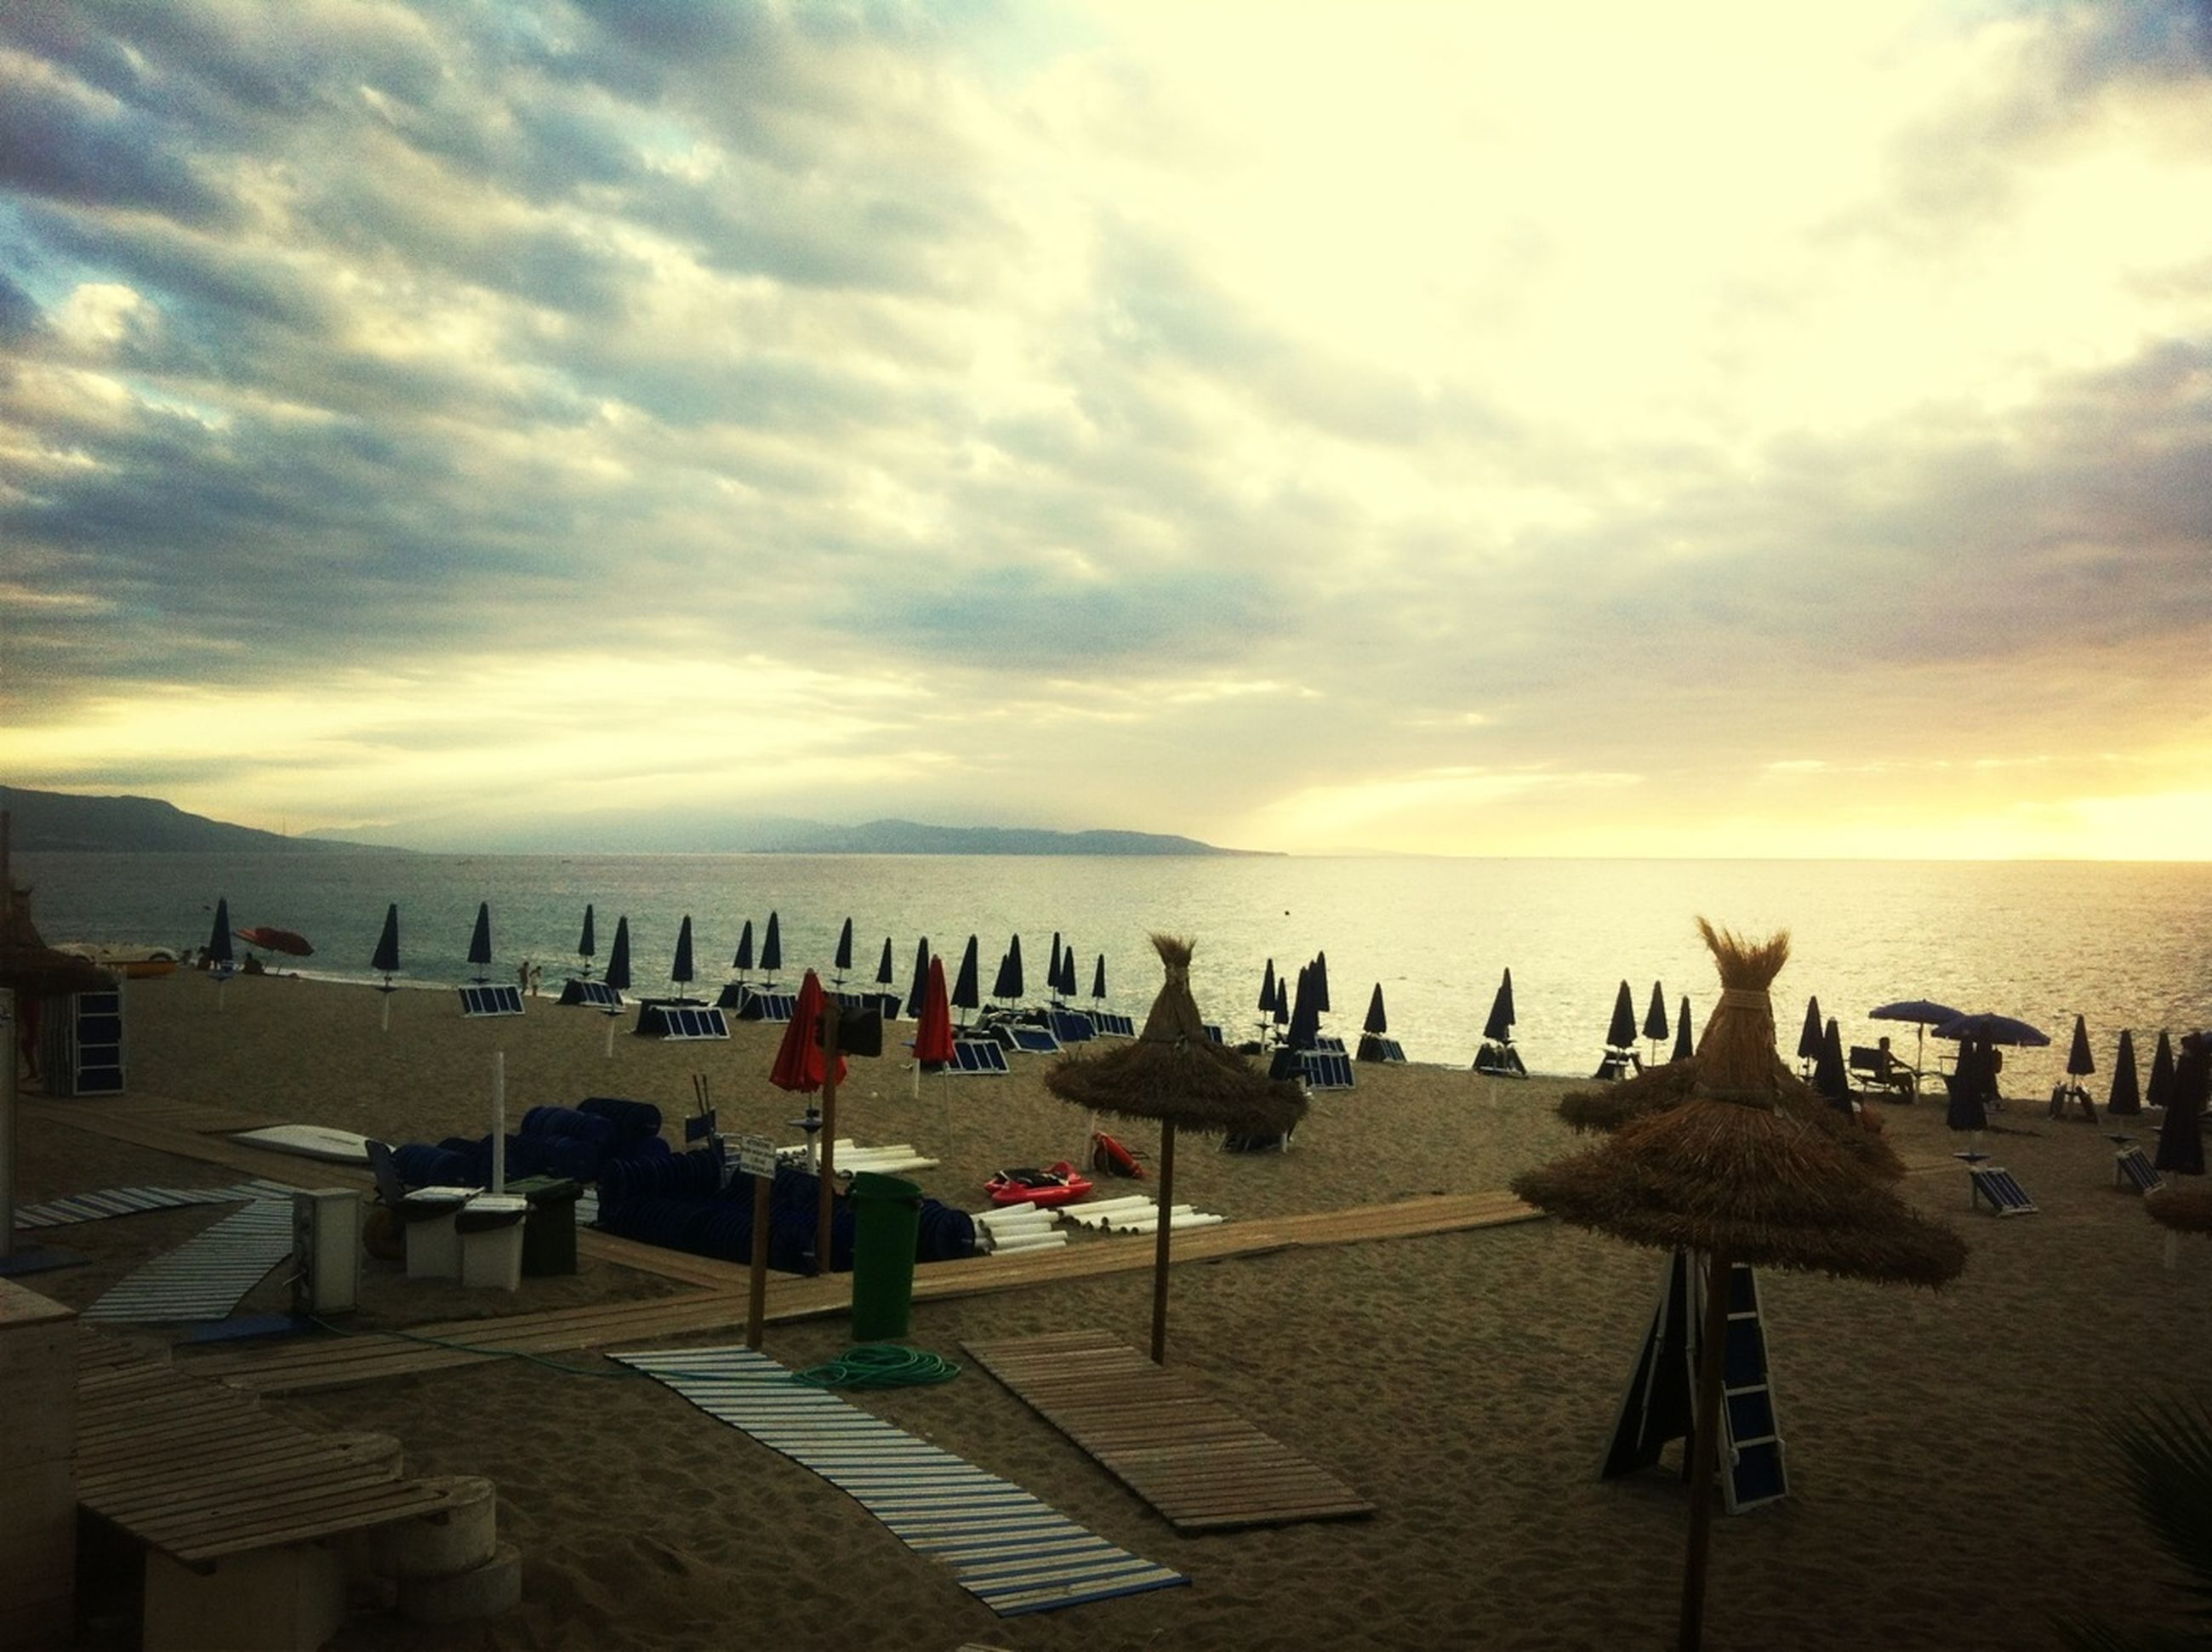 sea, sky, beach, water, horizon over water, tranquil scene, cloud - sky, scenics, tranquility, sand, chair, shore, sunset, nature, beauty in nature, absence, empty, cloud, vacations, table